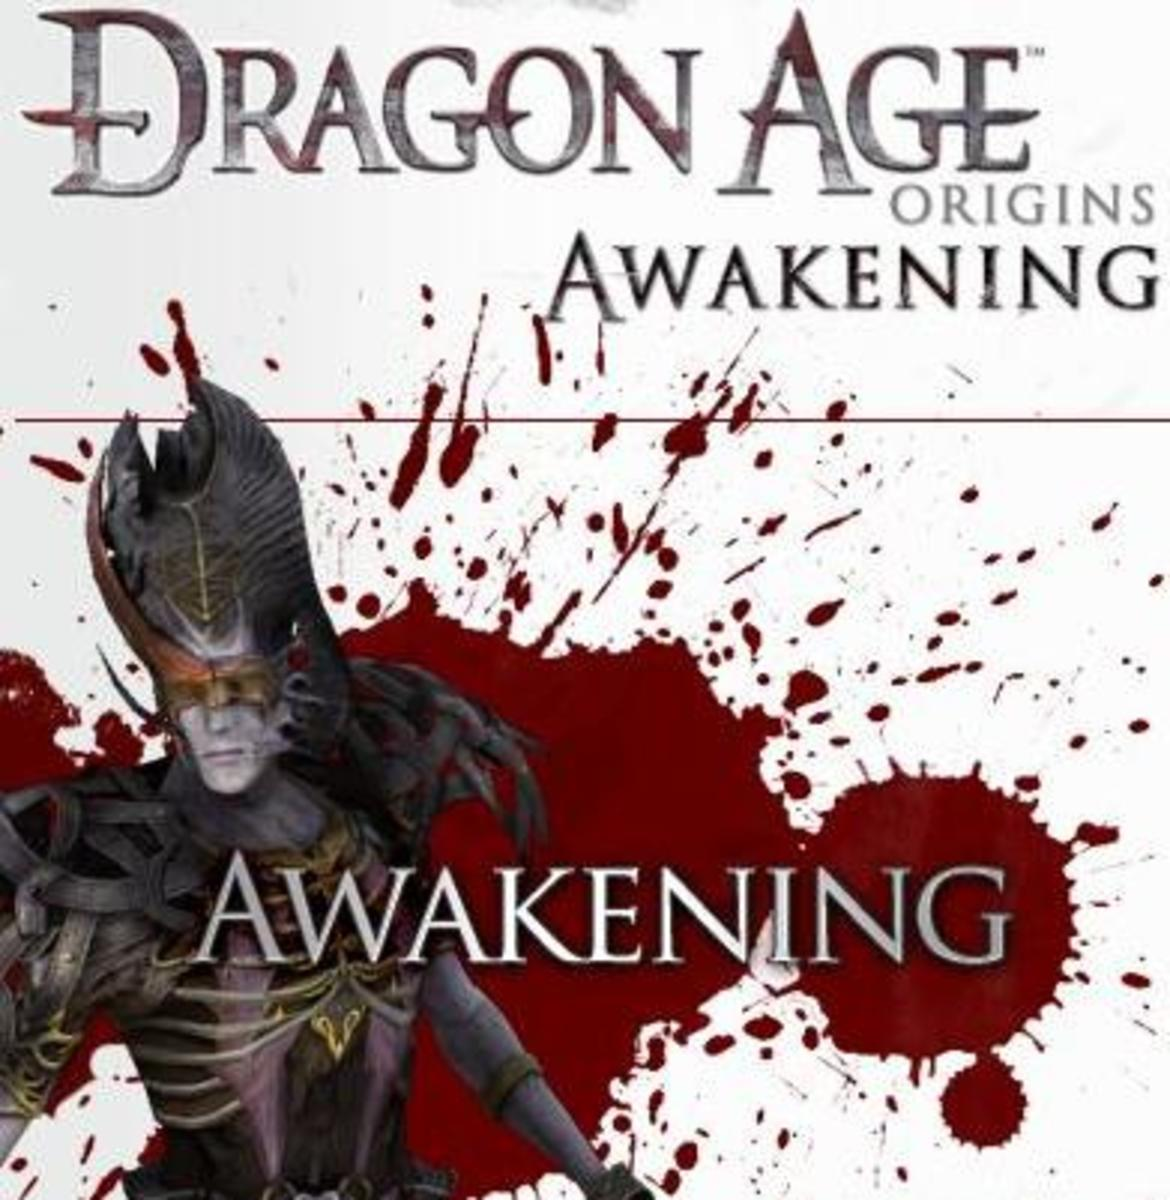 Dragon Age Origins: Awakening Gift Giving Guide